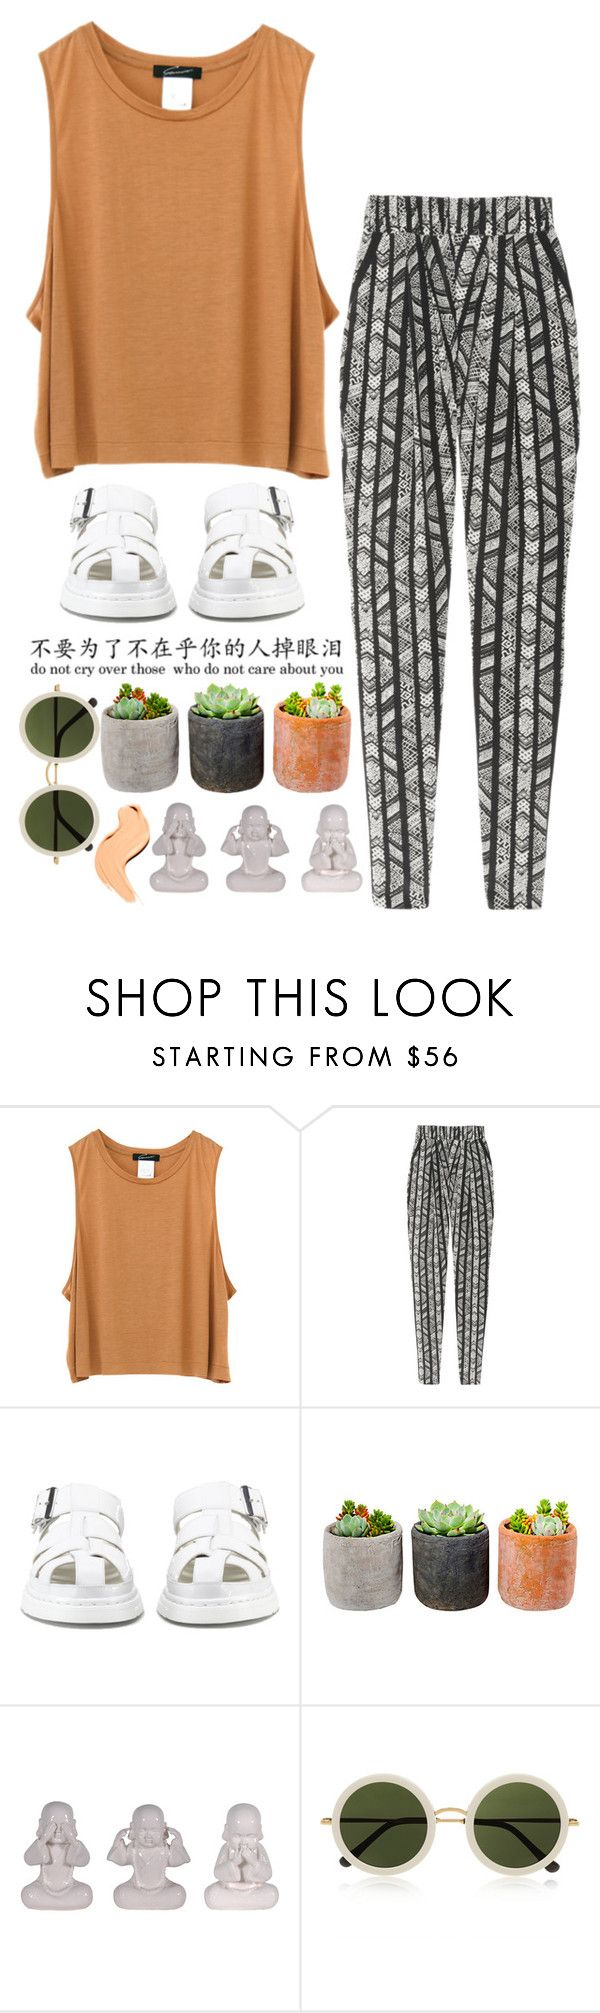 """""""Untitled #59"""" by mercecestyle ❤ liked on Polyvore featuring DAY Birger et Mikkelsen, Dr. Martens, Shop Succulents and The Row"""